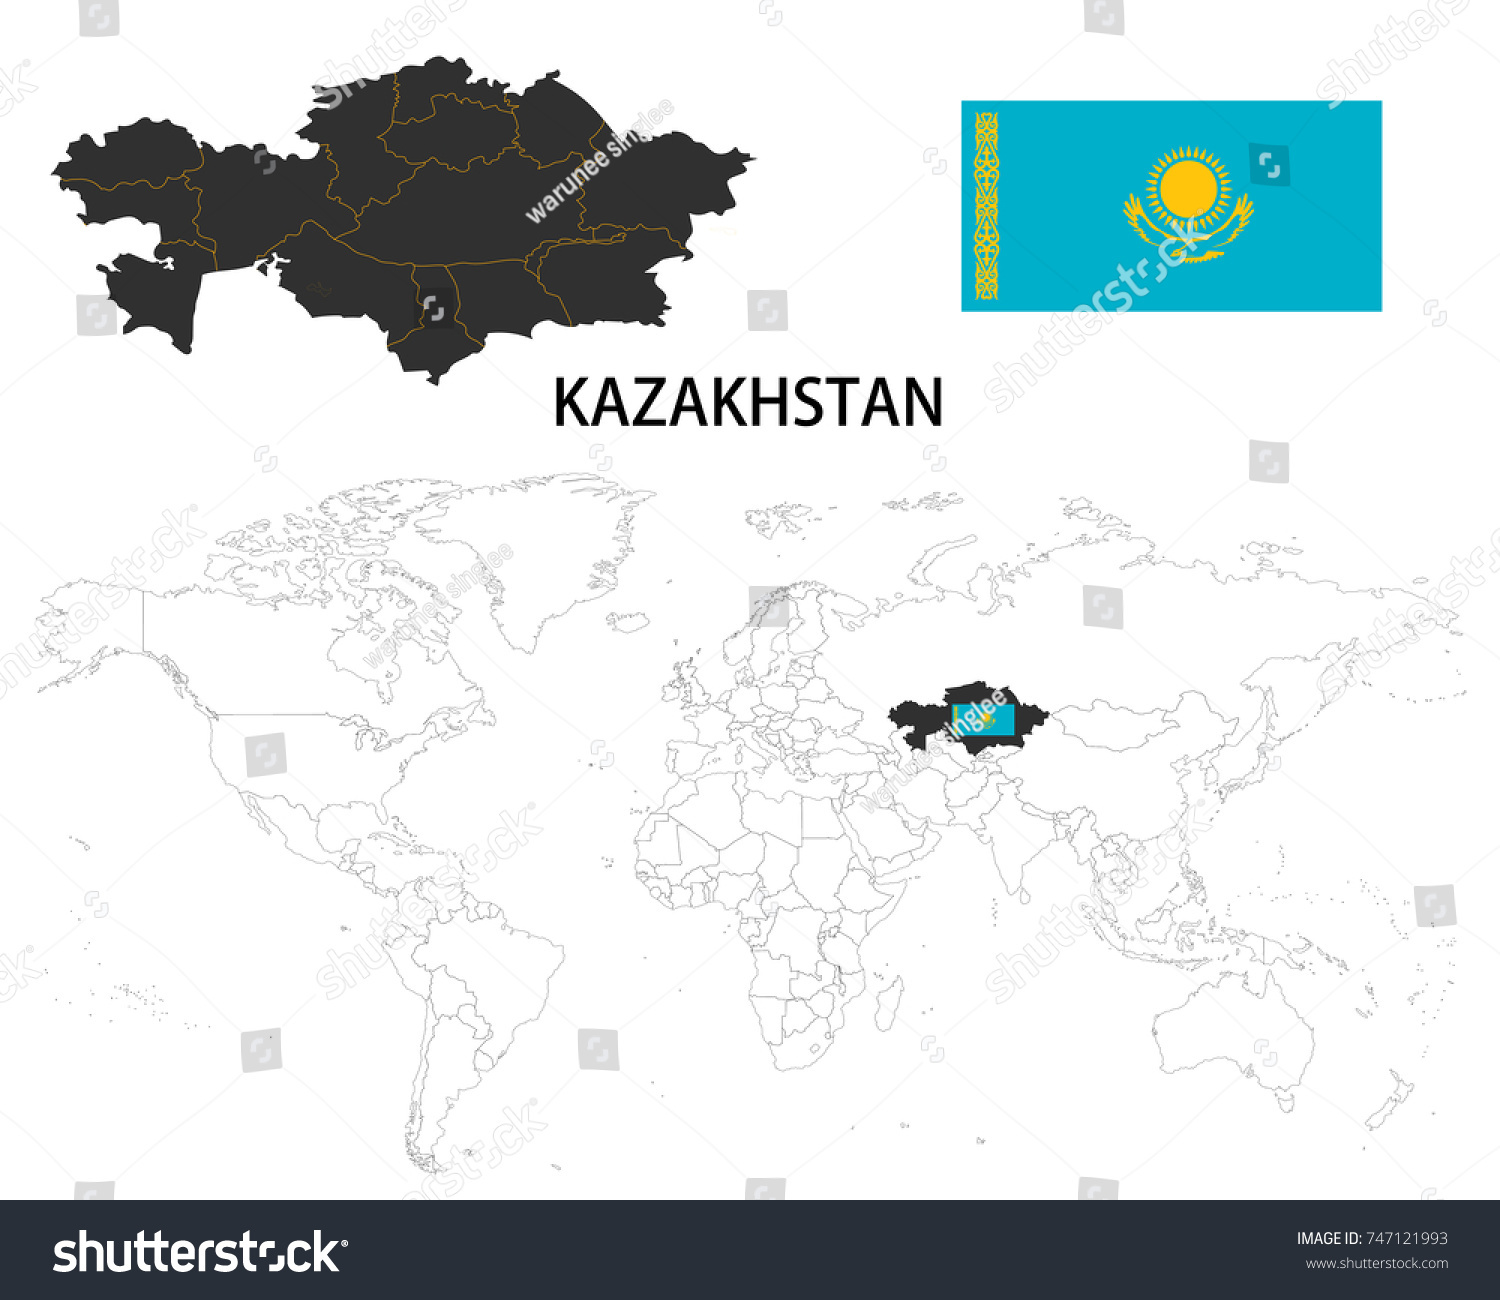 Kazakhstan map on world map flag stock vector 747121993 shutterstock kazakhstan map on a world map with flag on white background gumiabroncs Choice Image